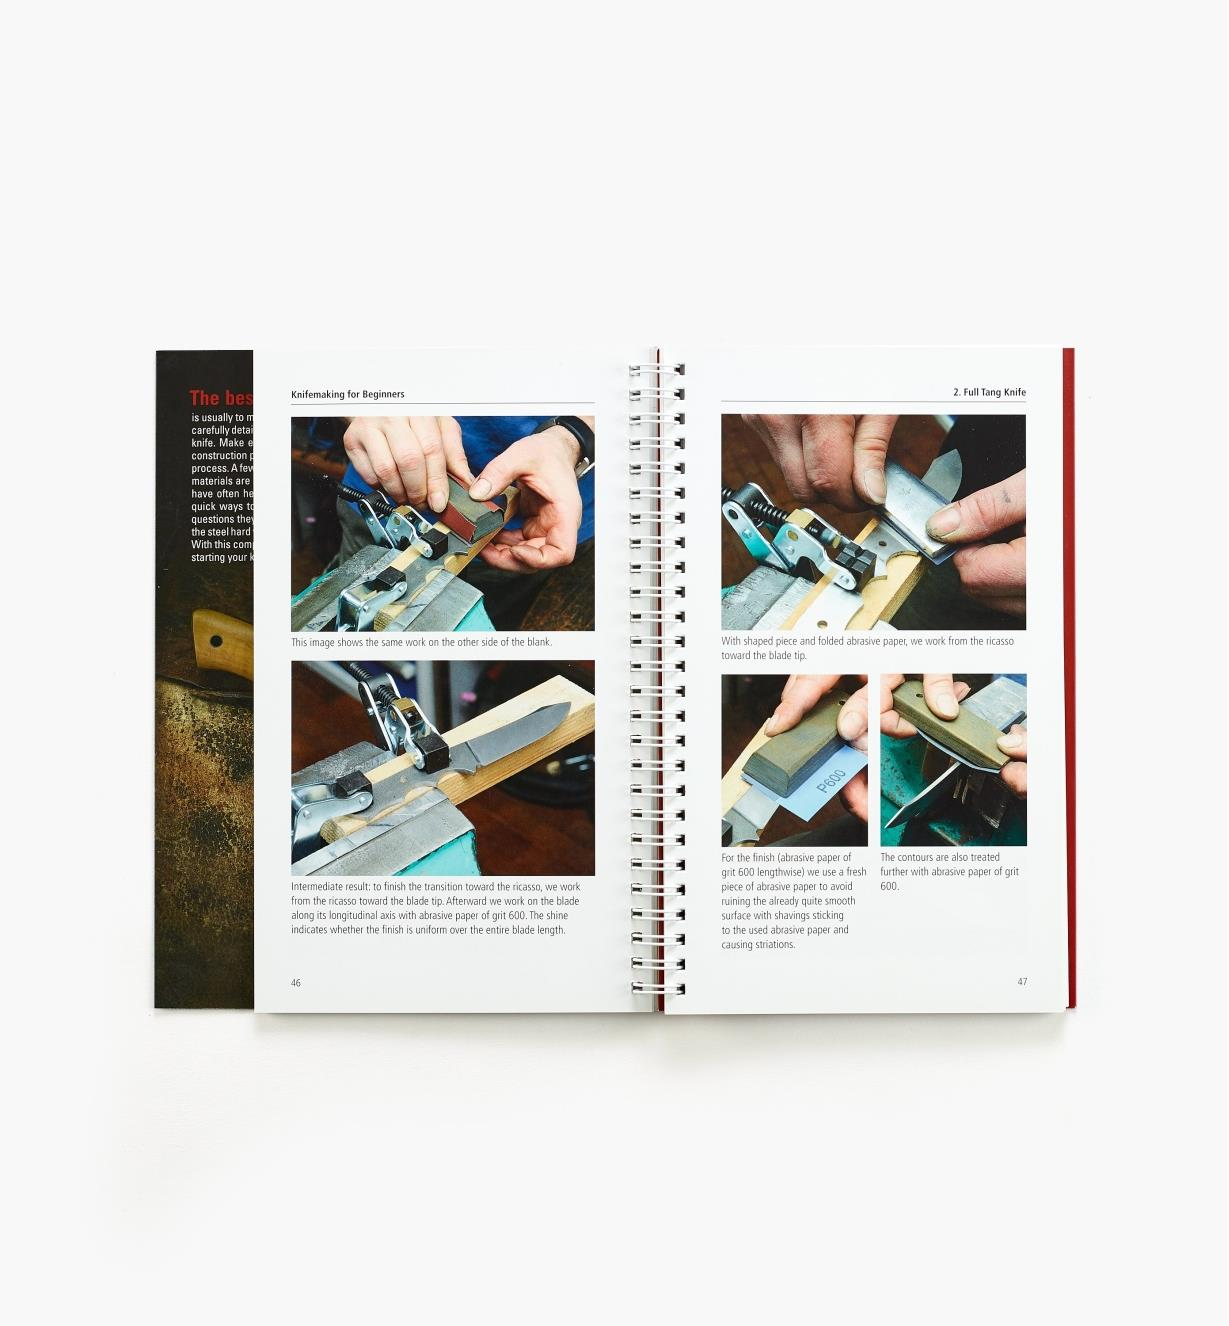 21L2012 - Knifemaking for Beginners